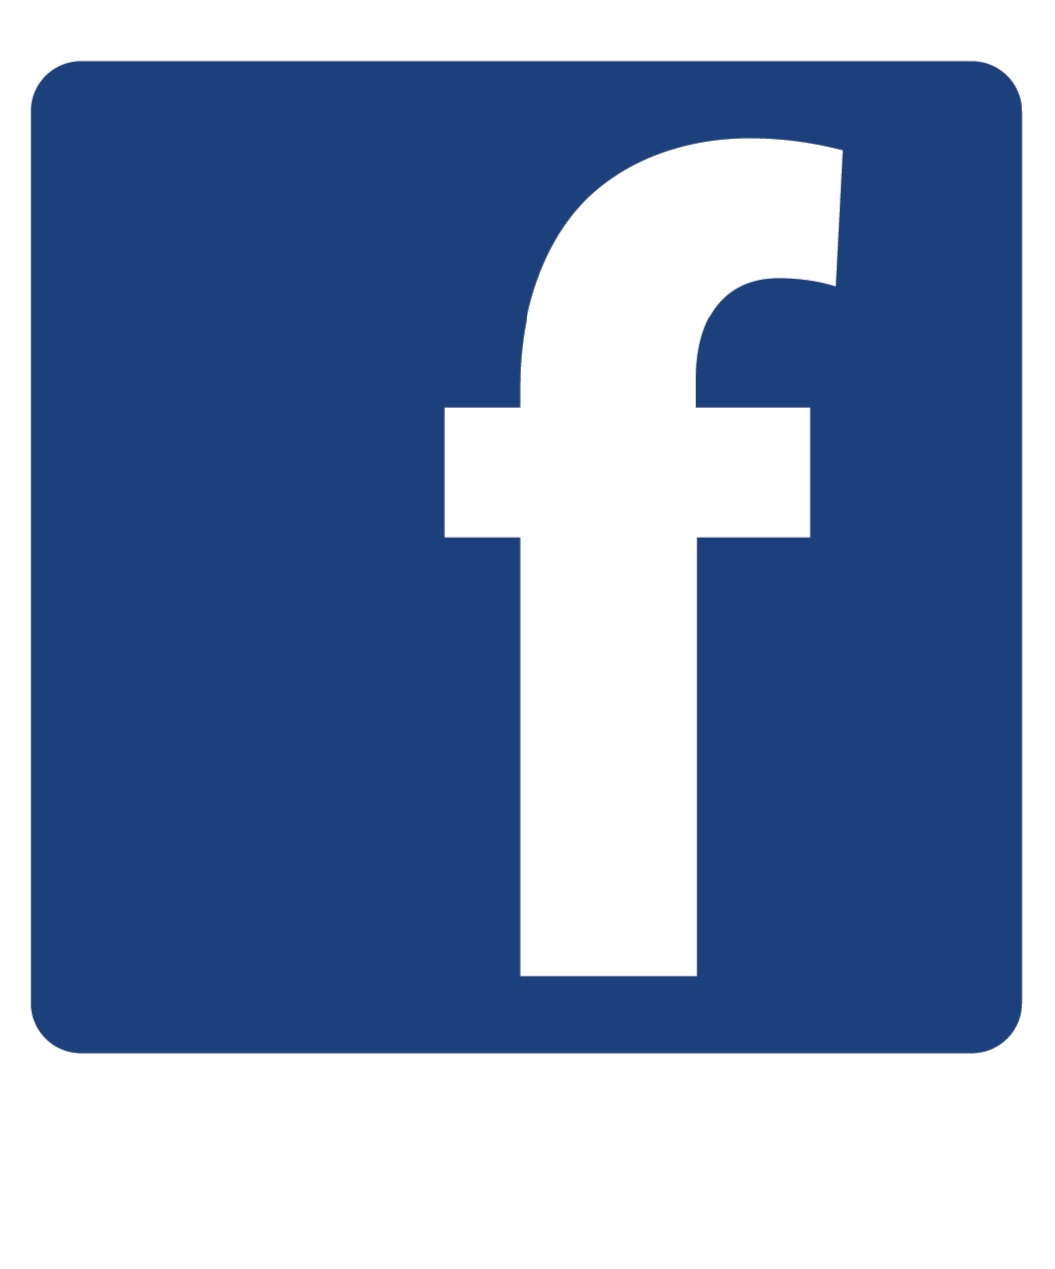 The famous Facebook logo.